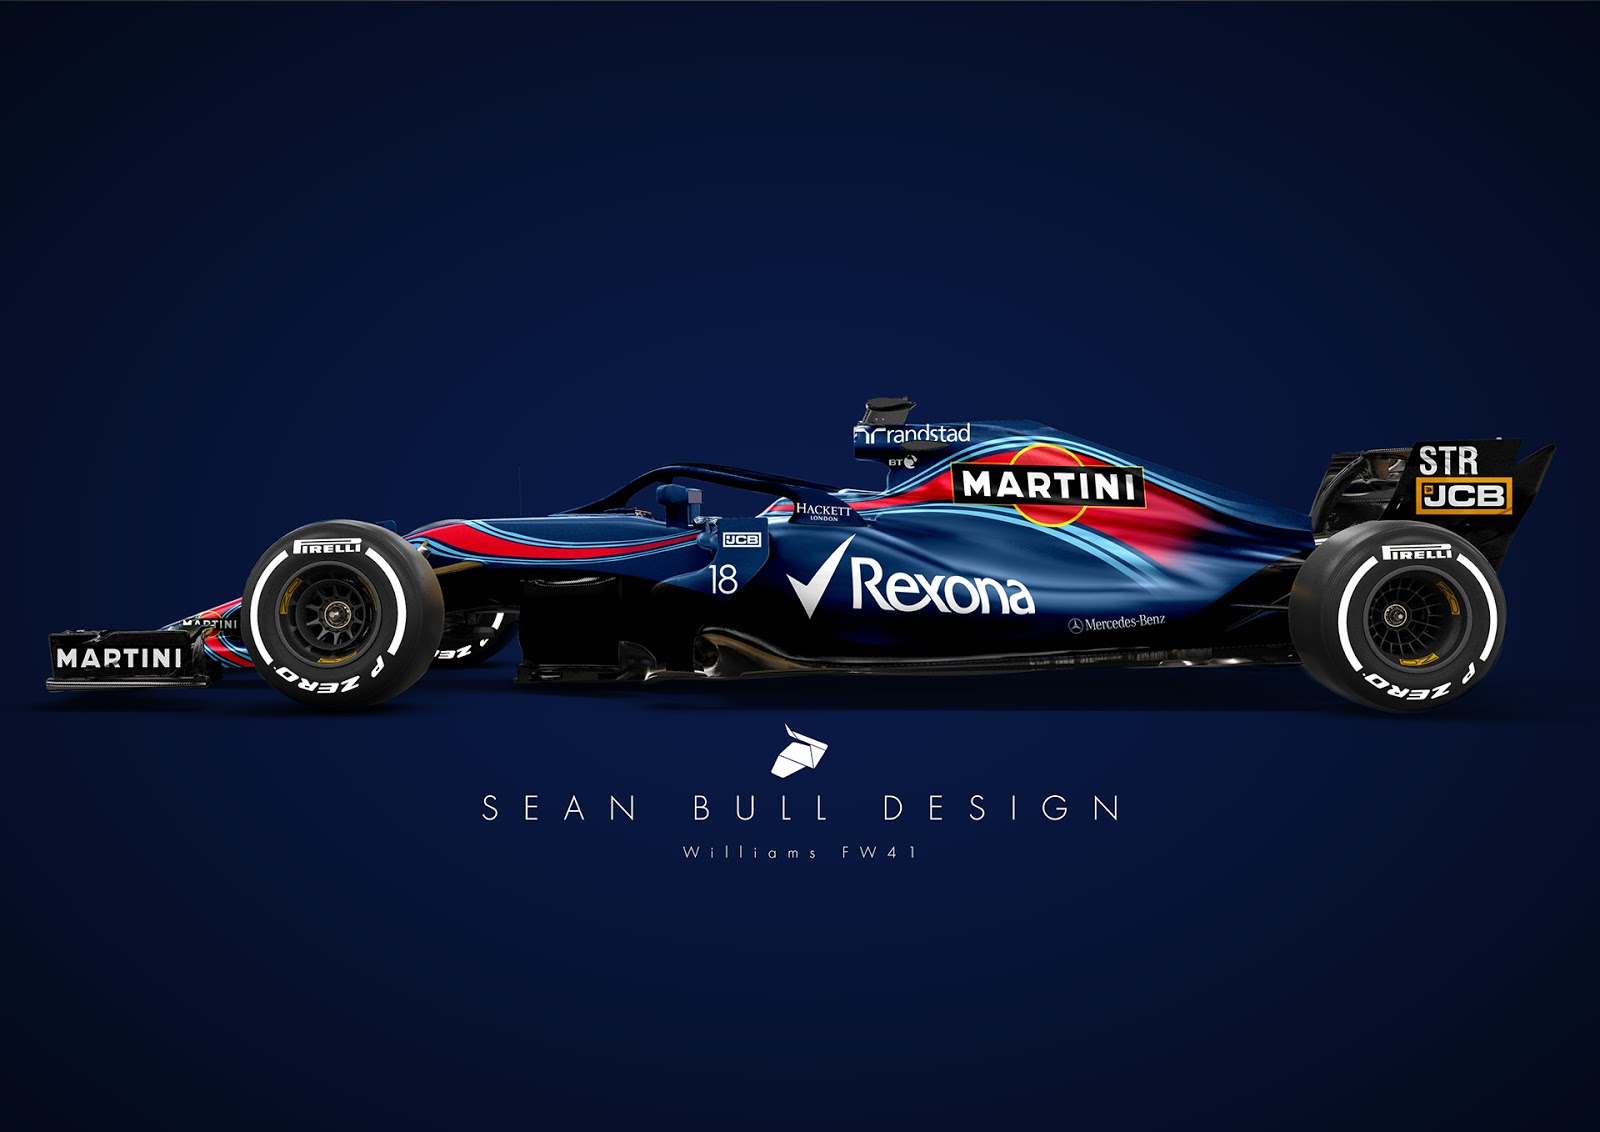 2018-F1-Car-Halo-Liveries-9